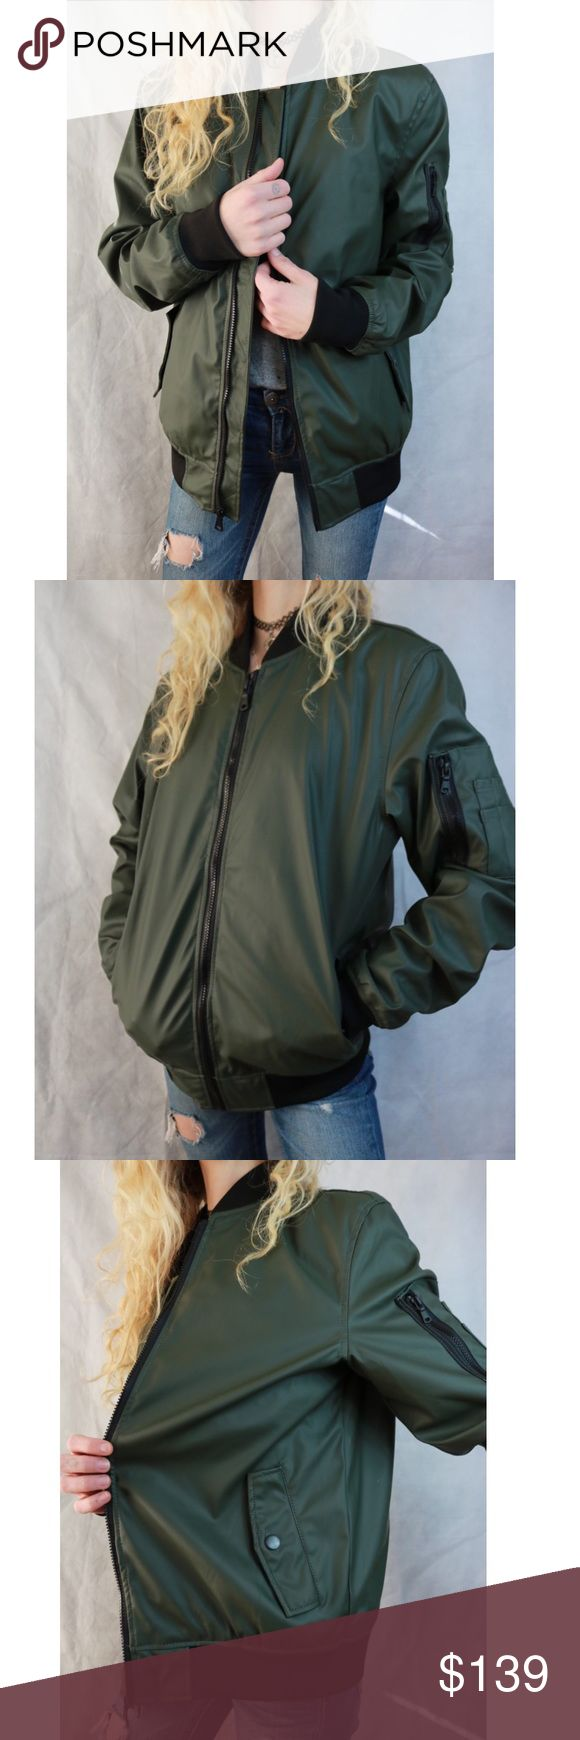 LIKE NEW Erational Matte Army Green Bomber Jacket in 2020